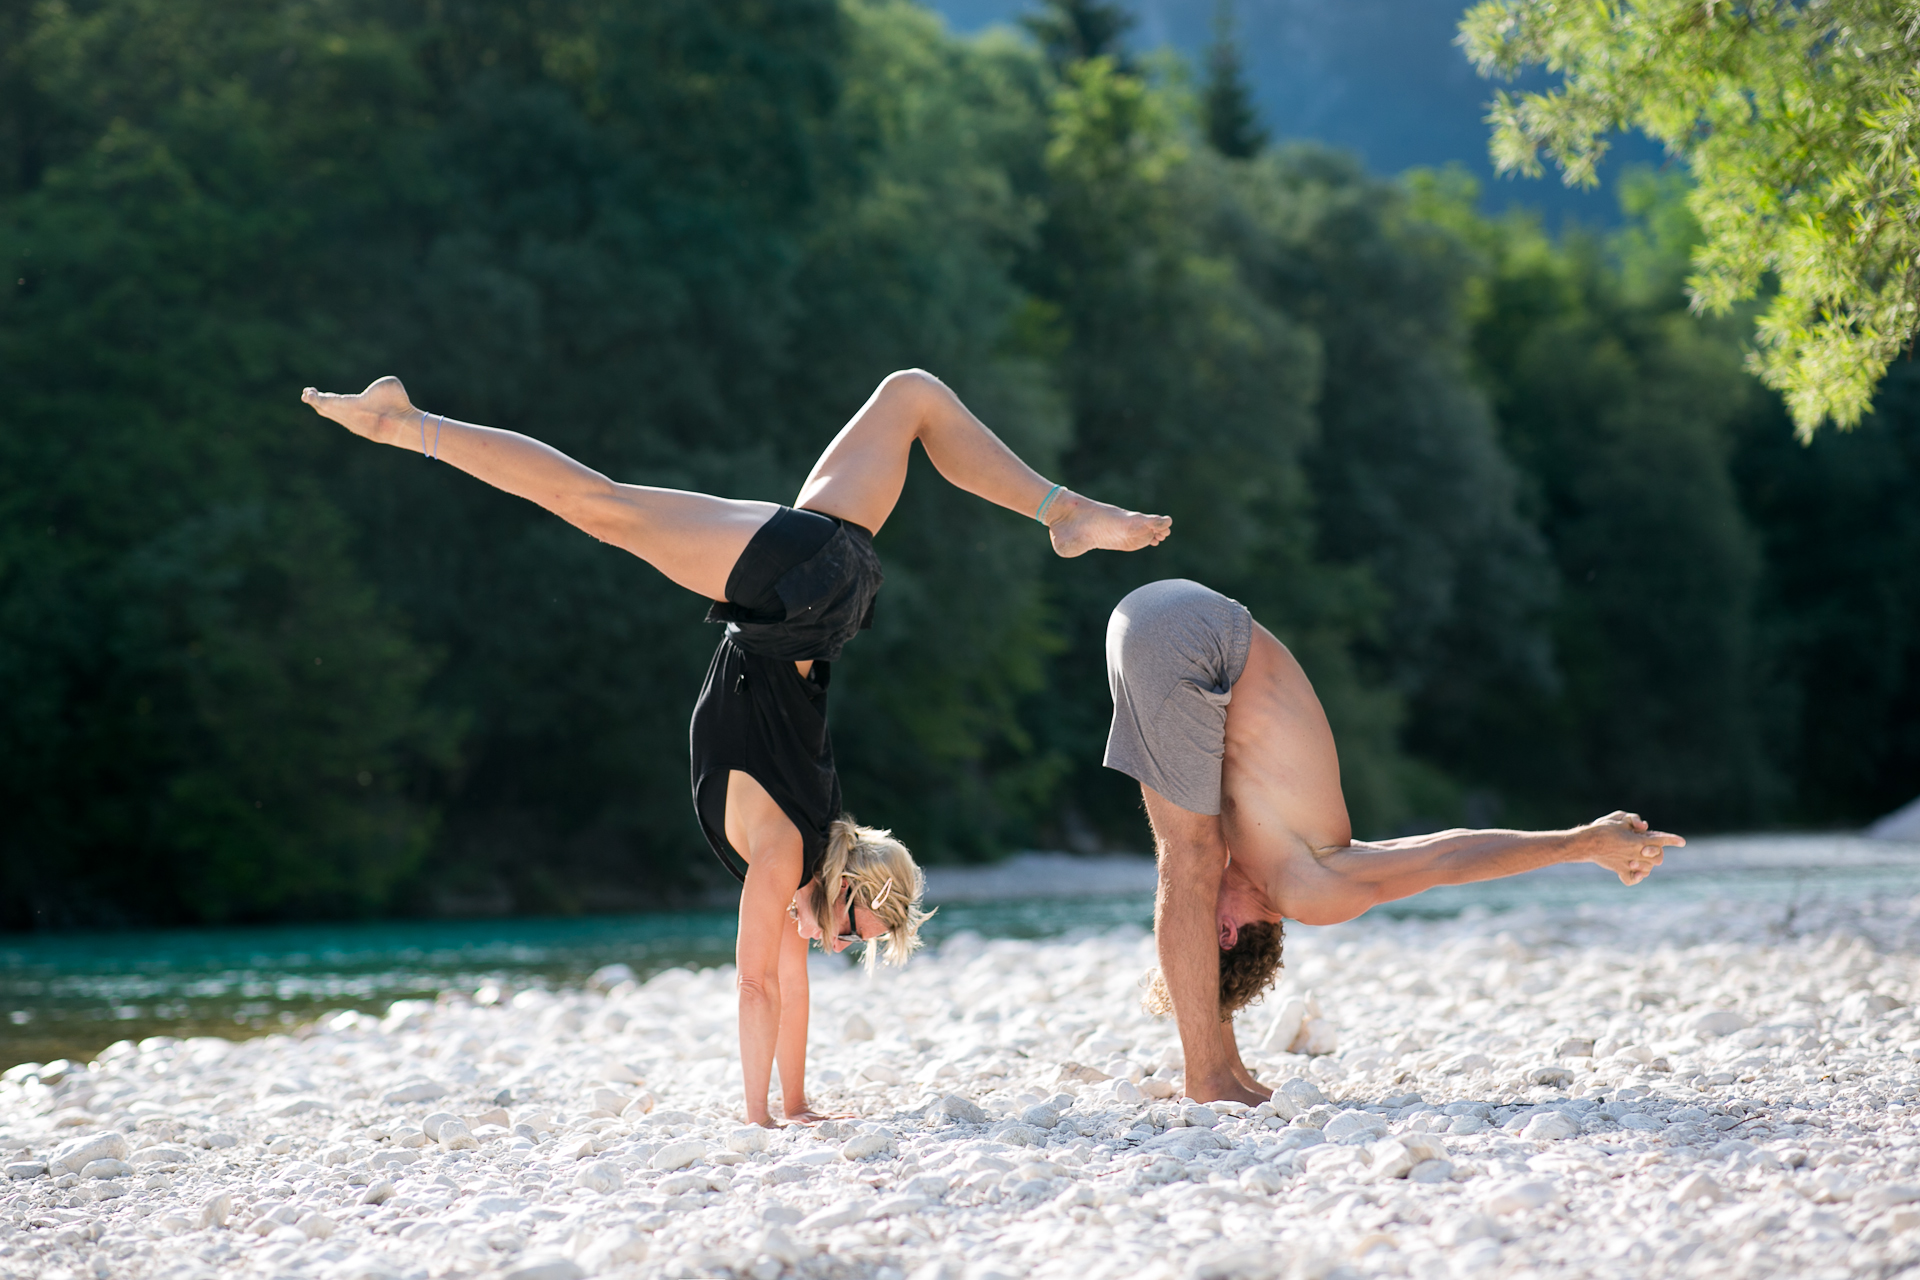 me_and_leander_yoga_1920px